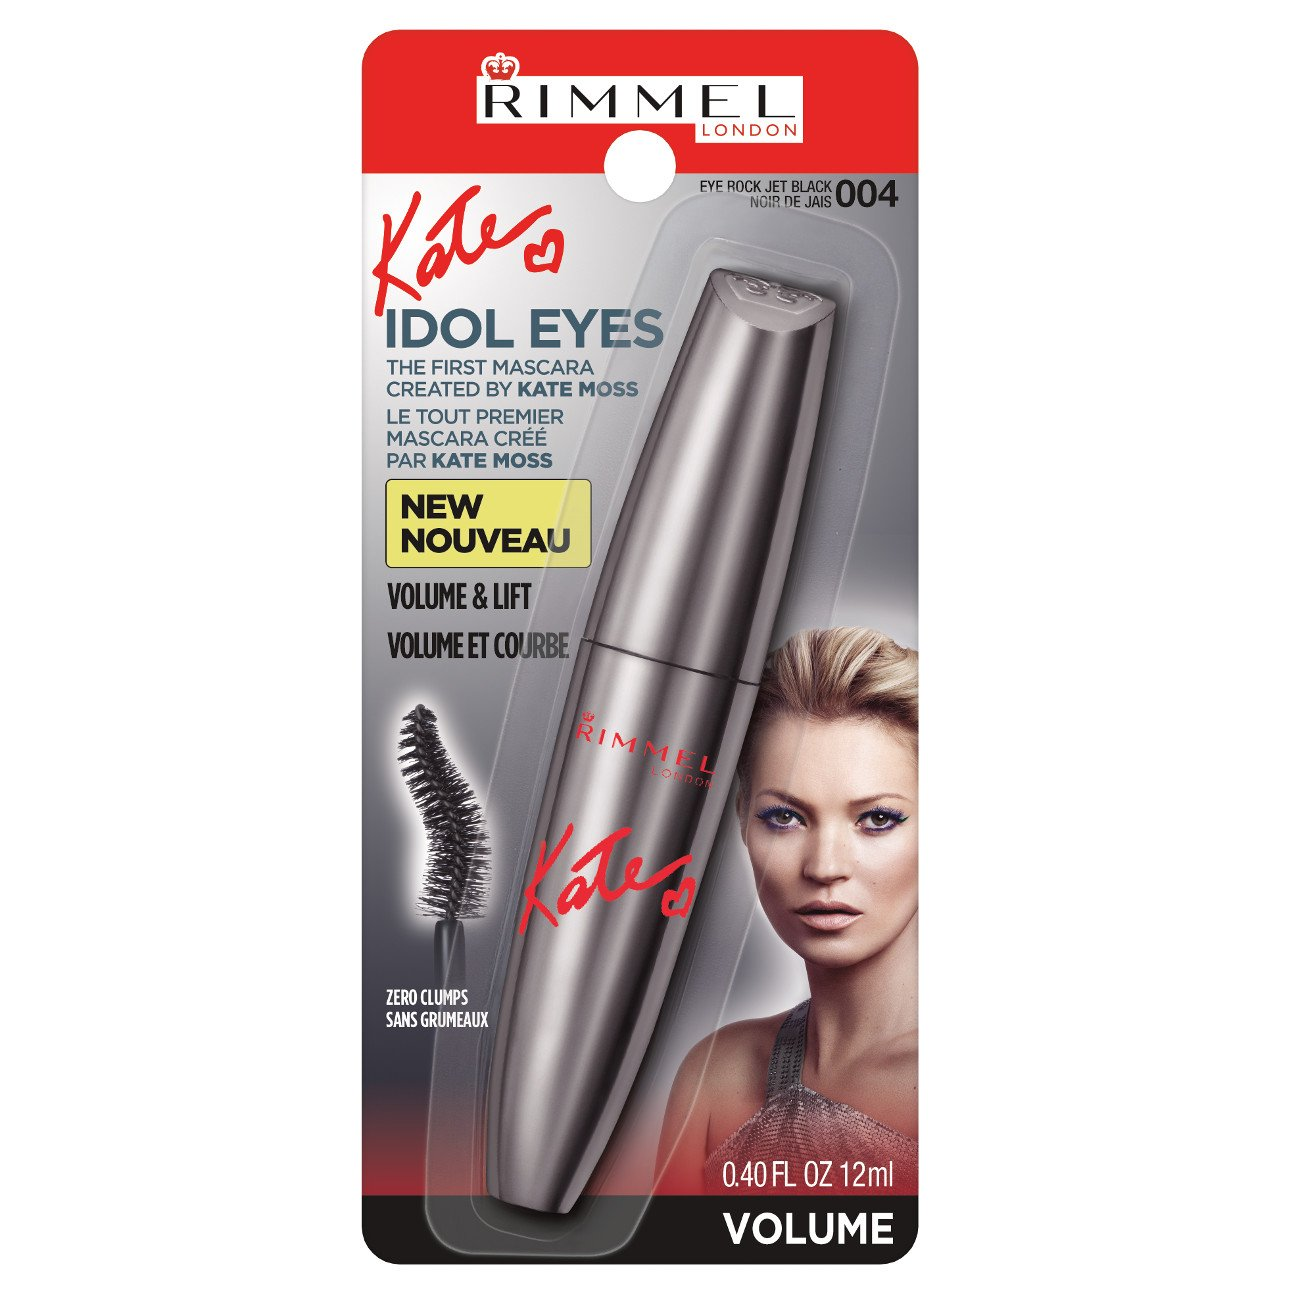 342489b2baf Rimmel Kate Idol Eyes Mascara Eye Rock - Jet Black: Amazon.co.uk: Beauty